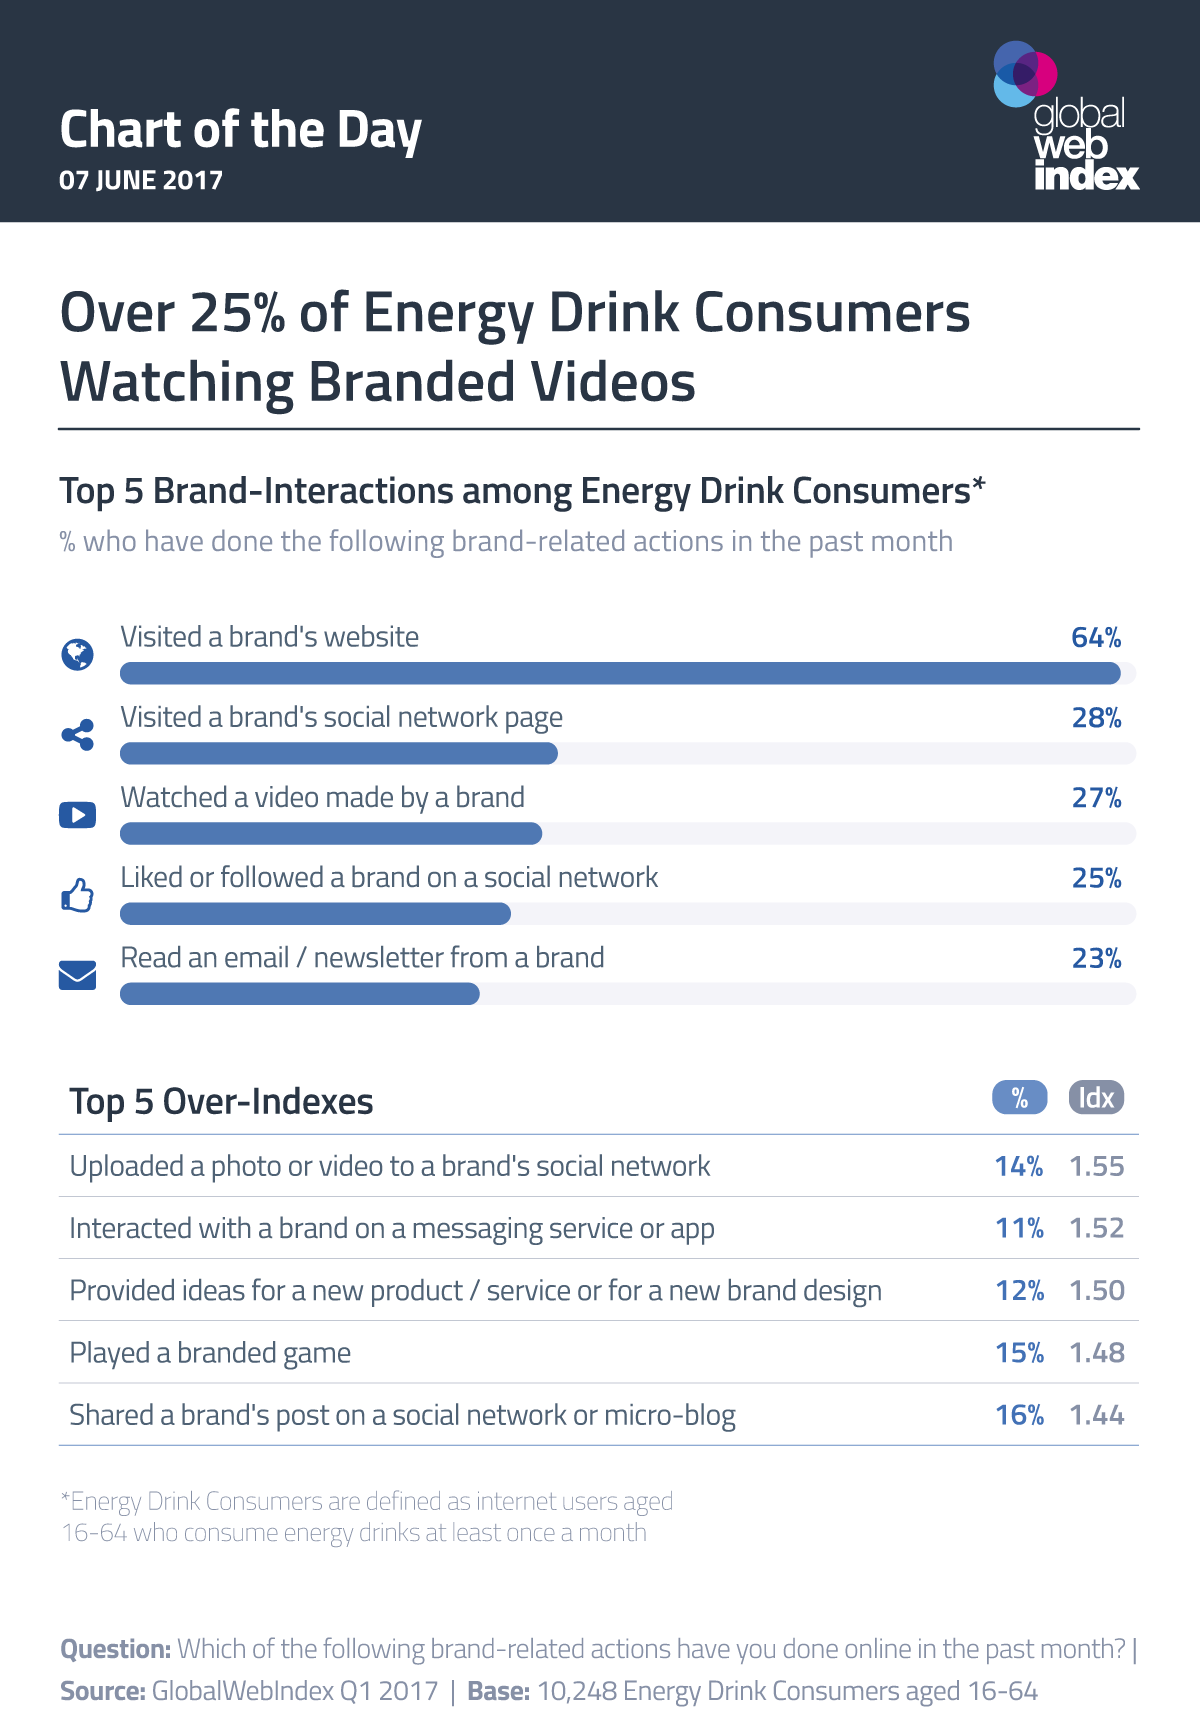 Over 25% of Energy Drink Consumers Watching Branded Videos